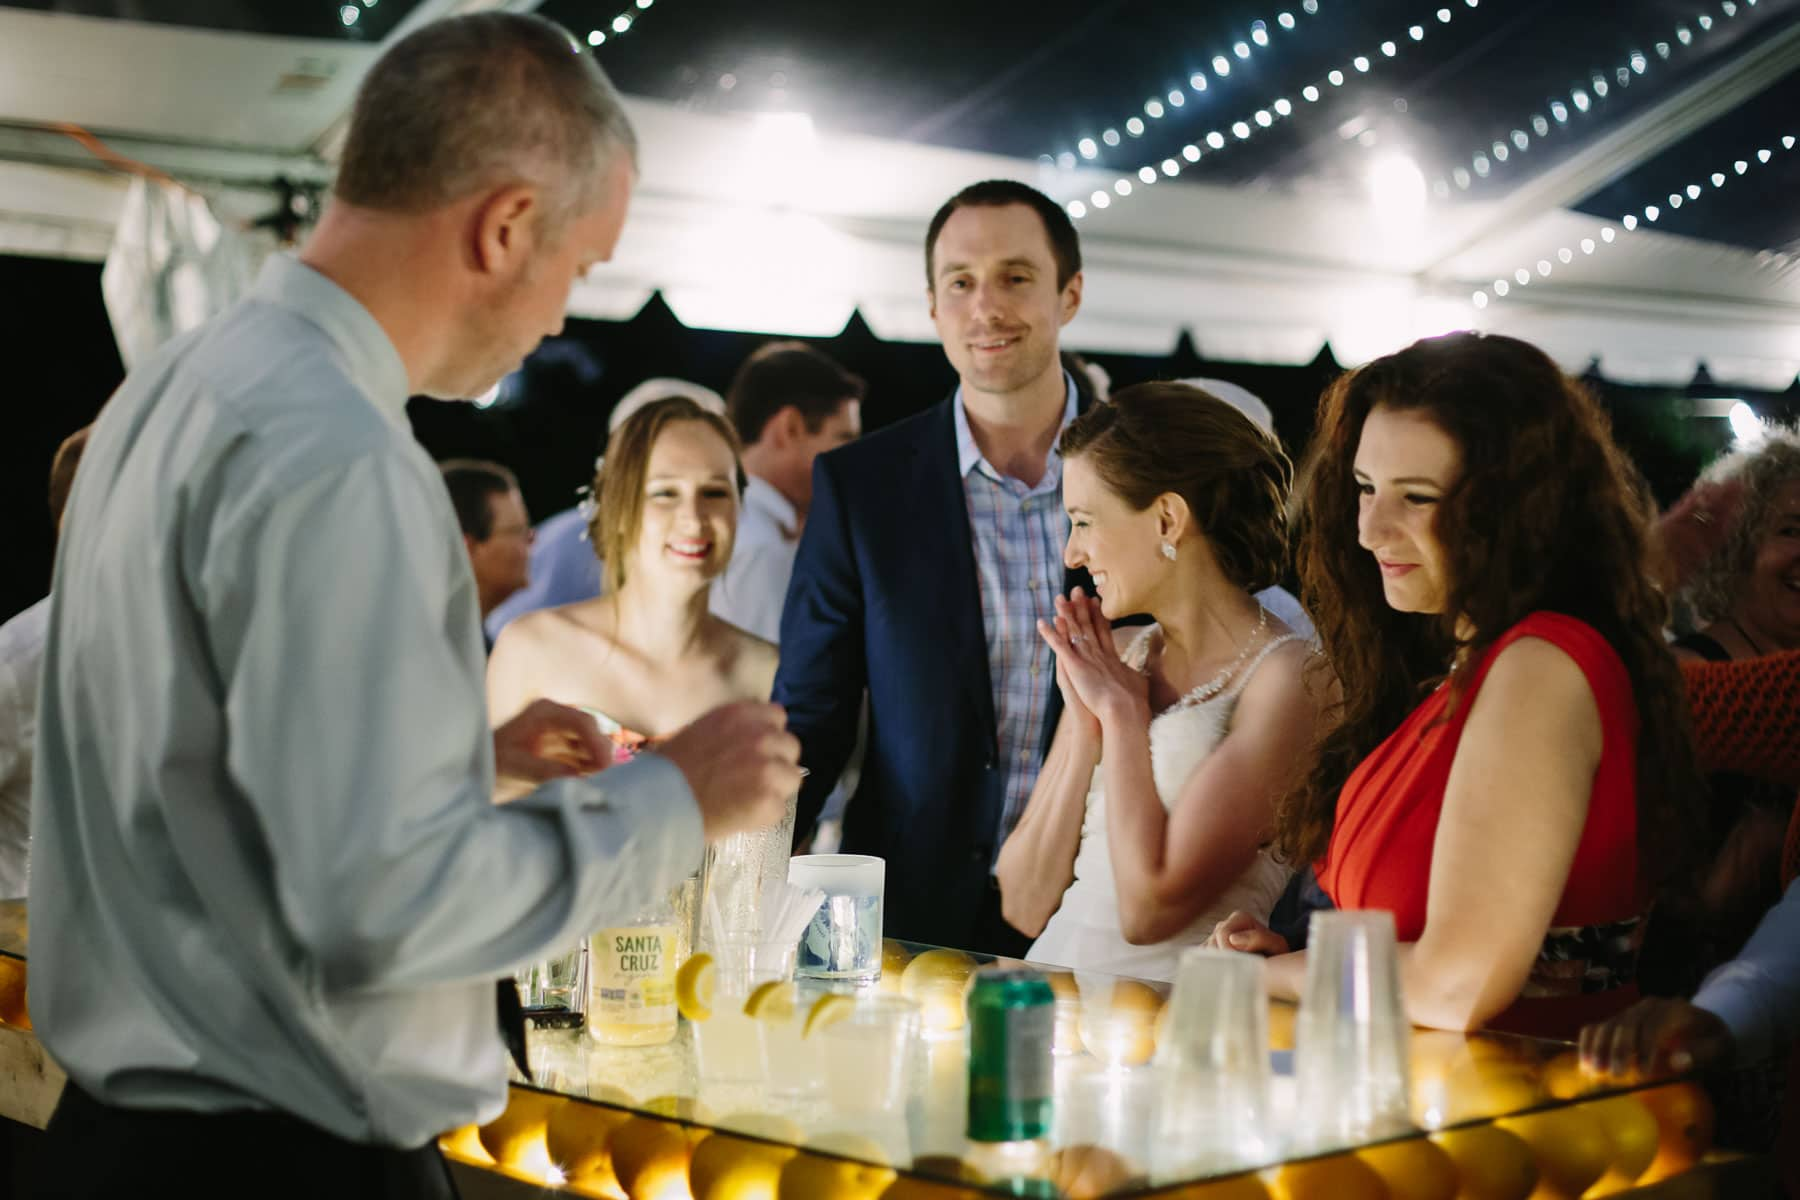 The bride smiles while holding her hands to her face, surrounded by family, as they order drinks from the bar in a tent in these backyard wedding photos.